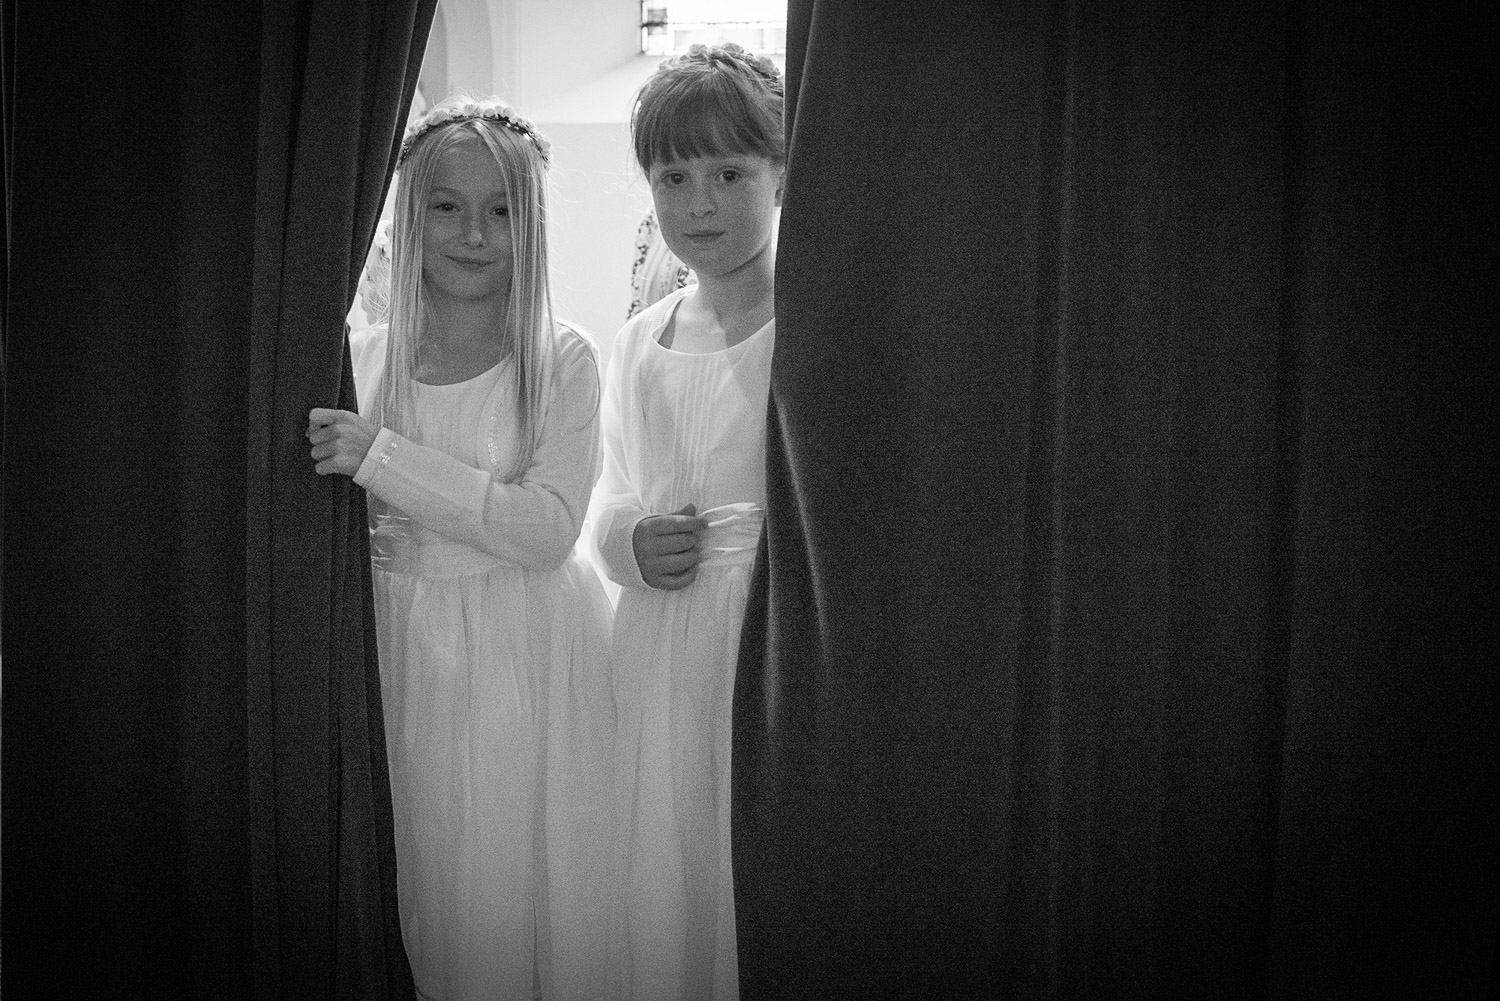 Copy of Flowers girls at wedding ceremony in Harrogate